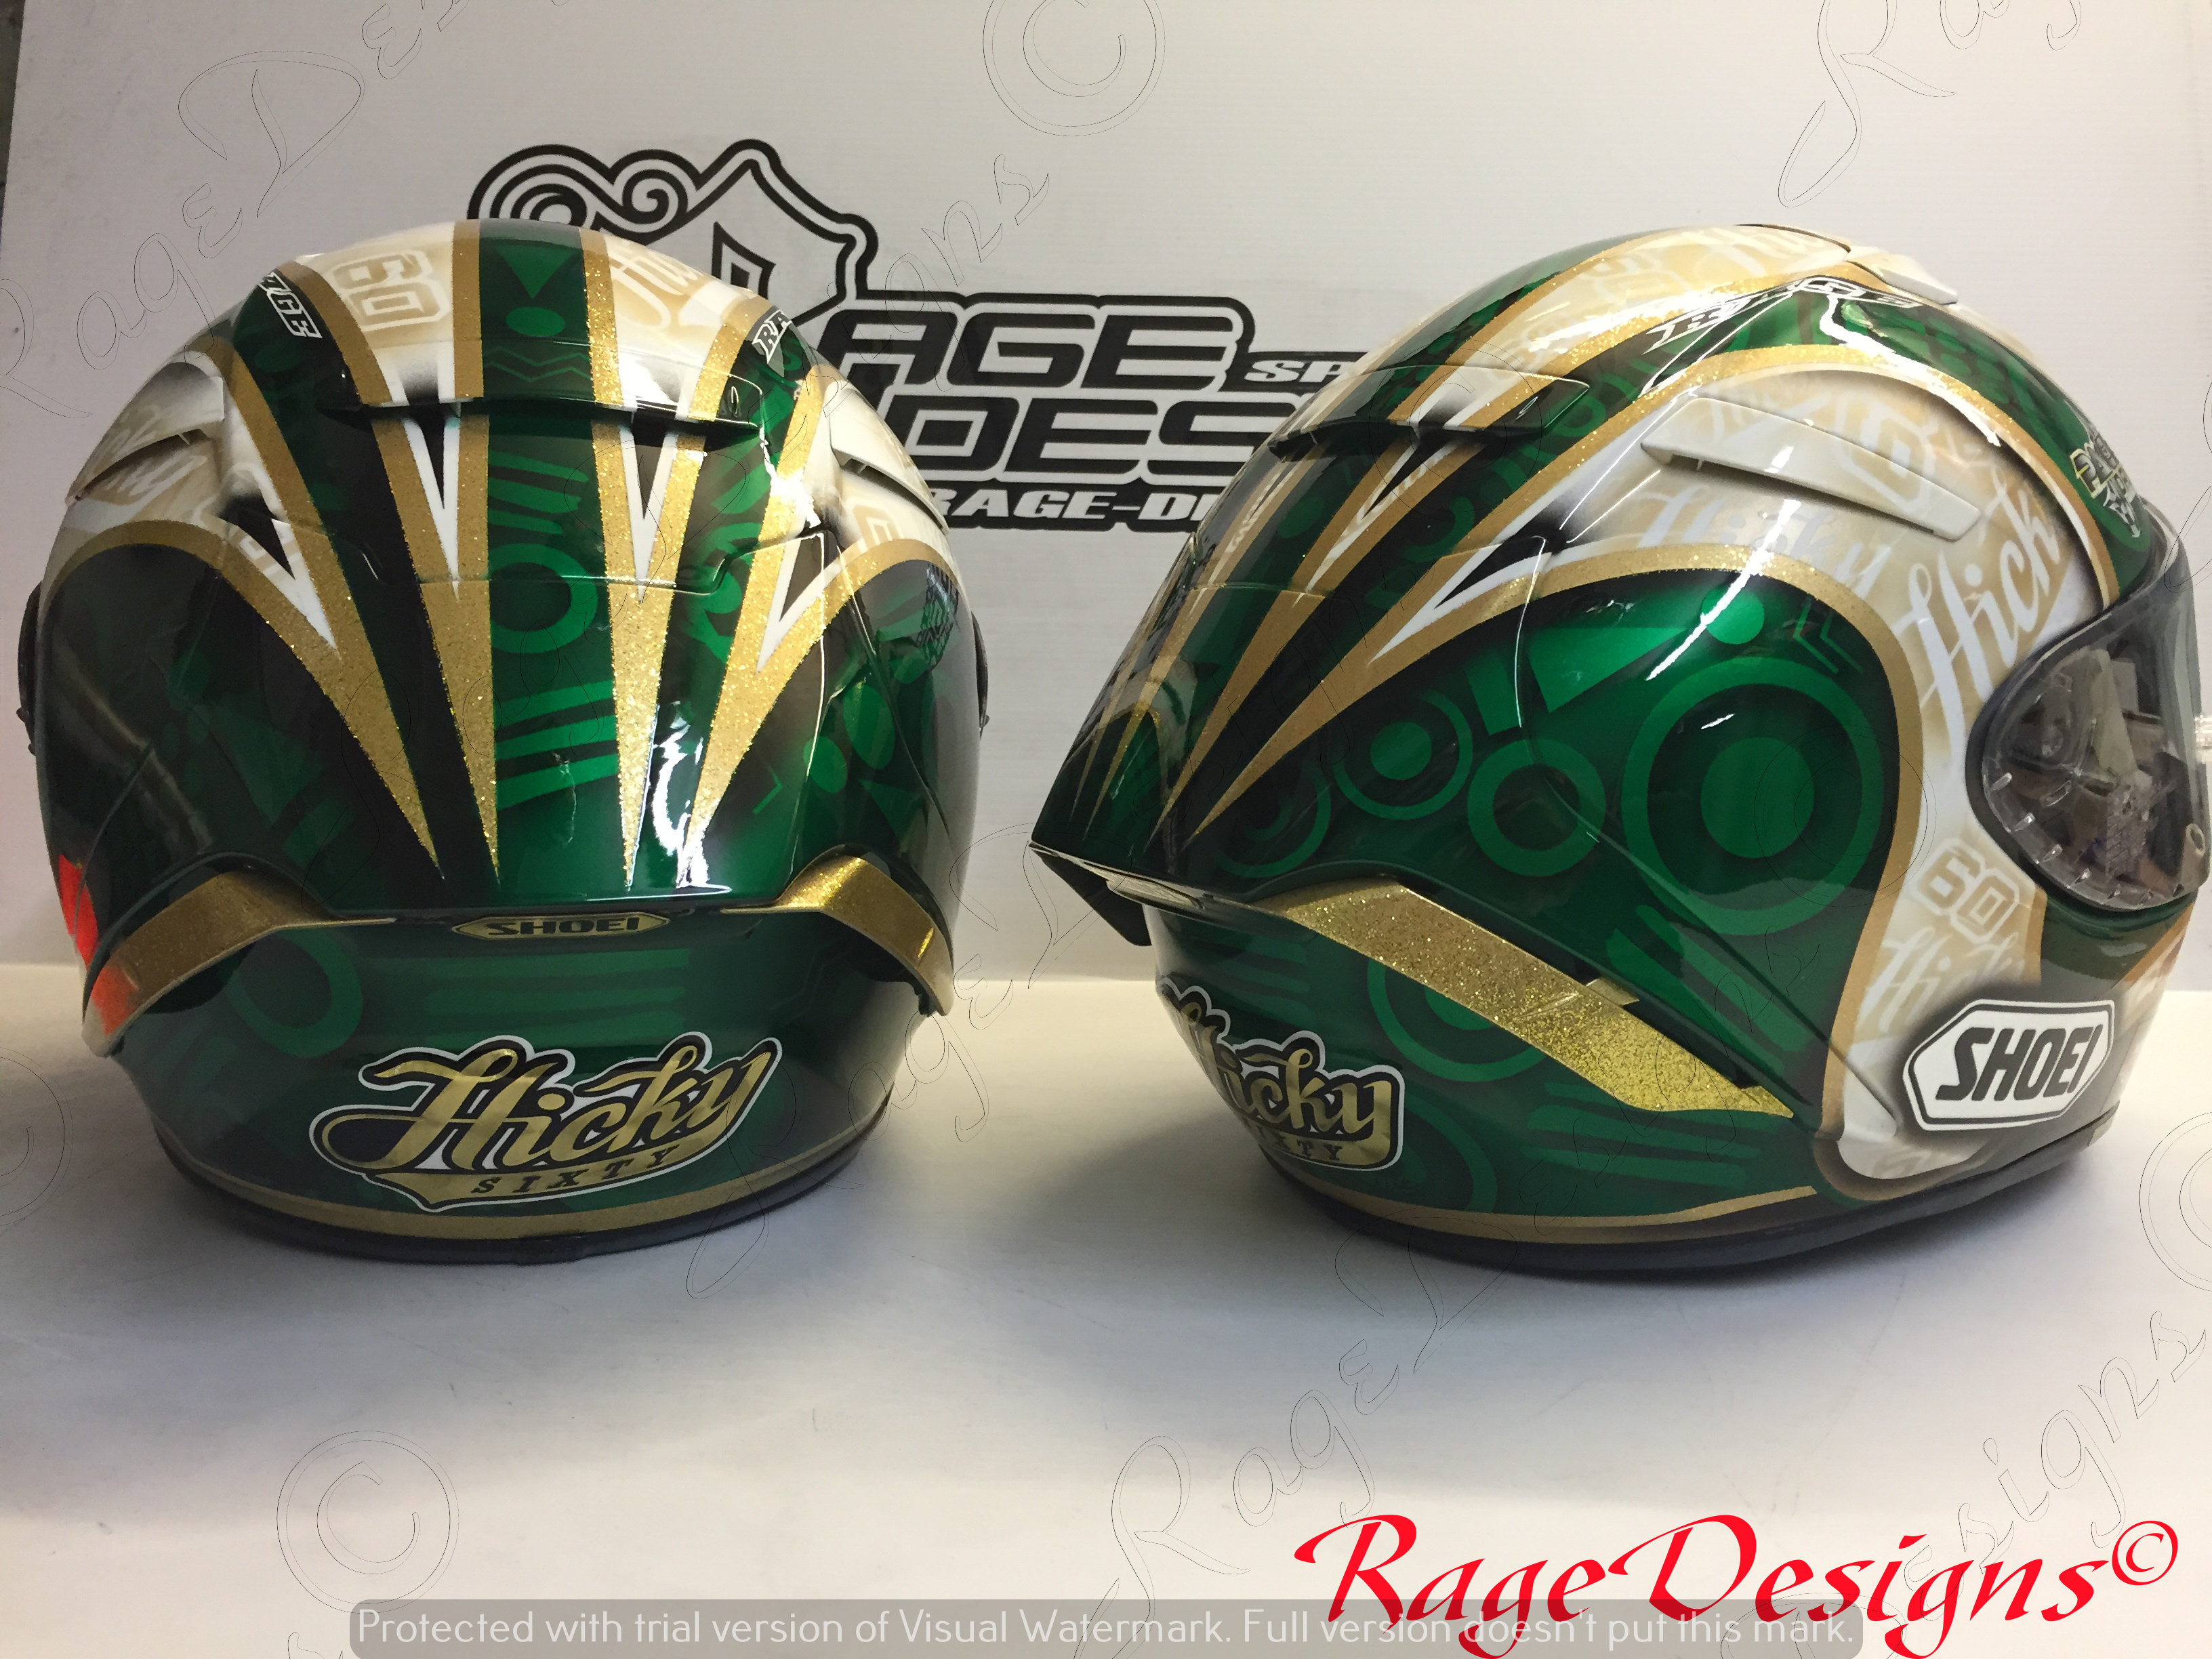 Hicky BSB 17 by Rage Designs